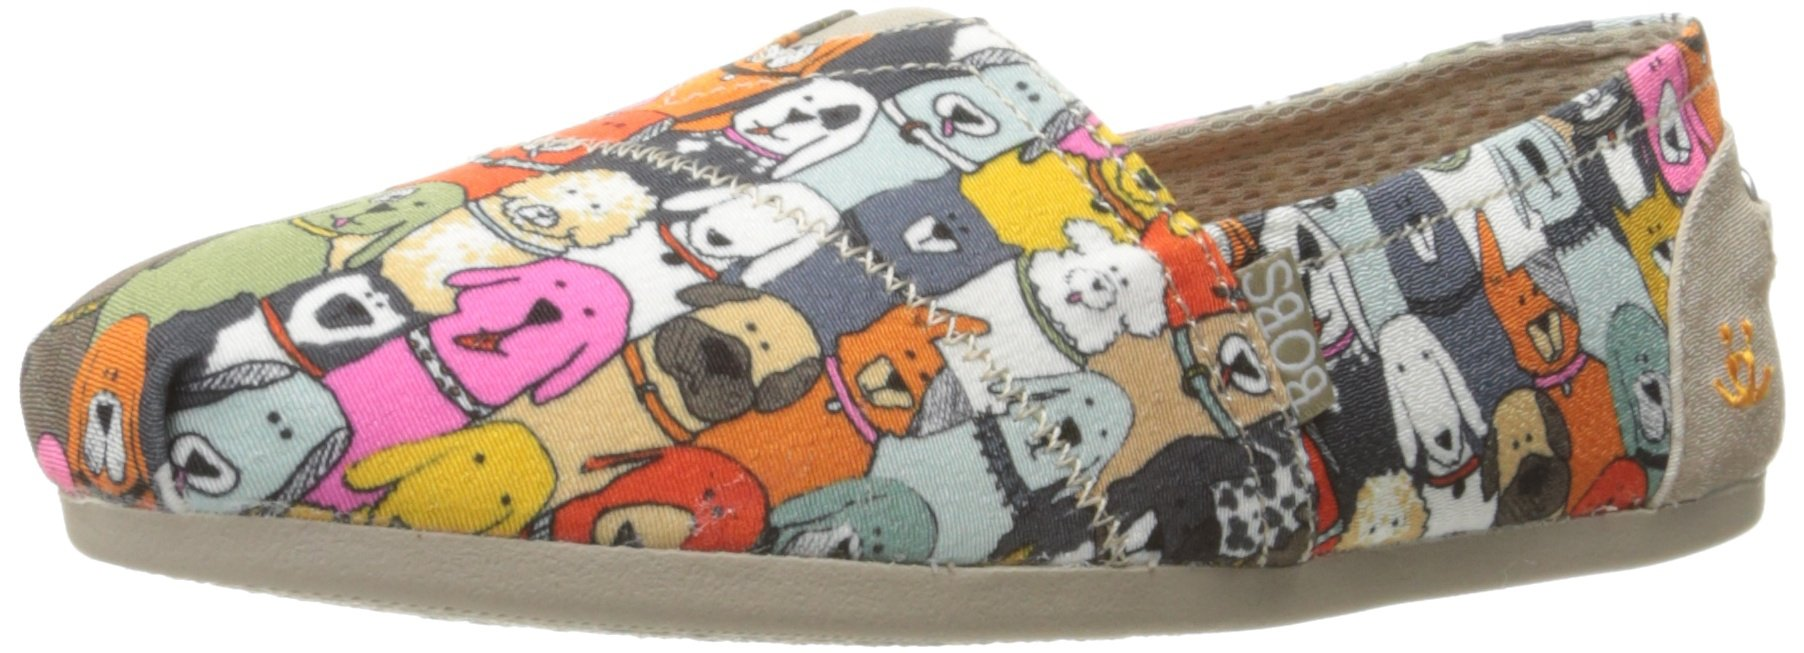 Skechers Bobs Plush Pup Smarts Womens Slip On Alpargata Flats, Multi, 7 M US